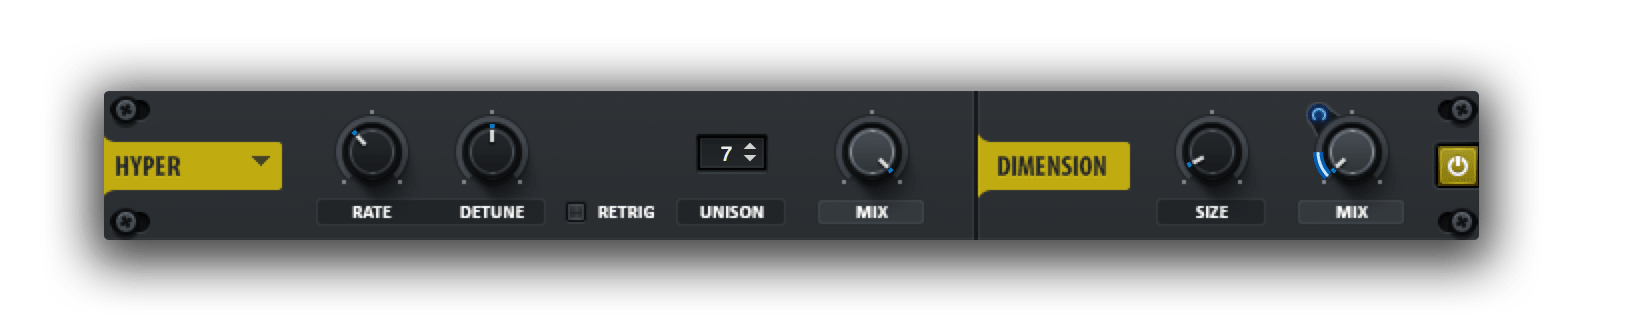 hyper production tips xfer serum effect fx